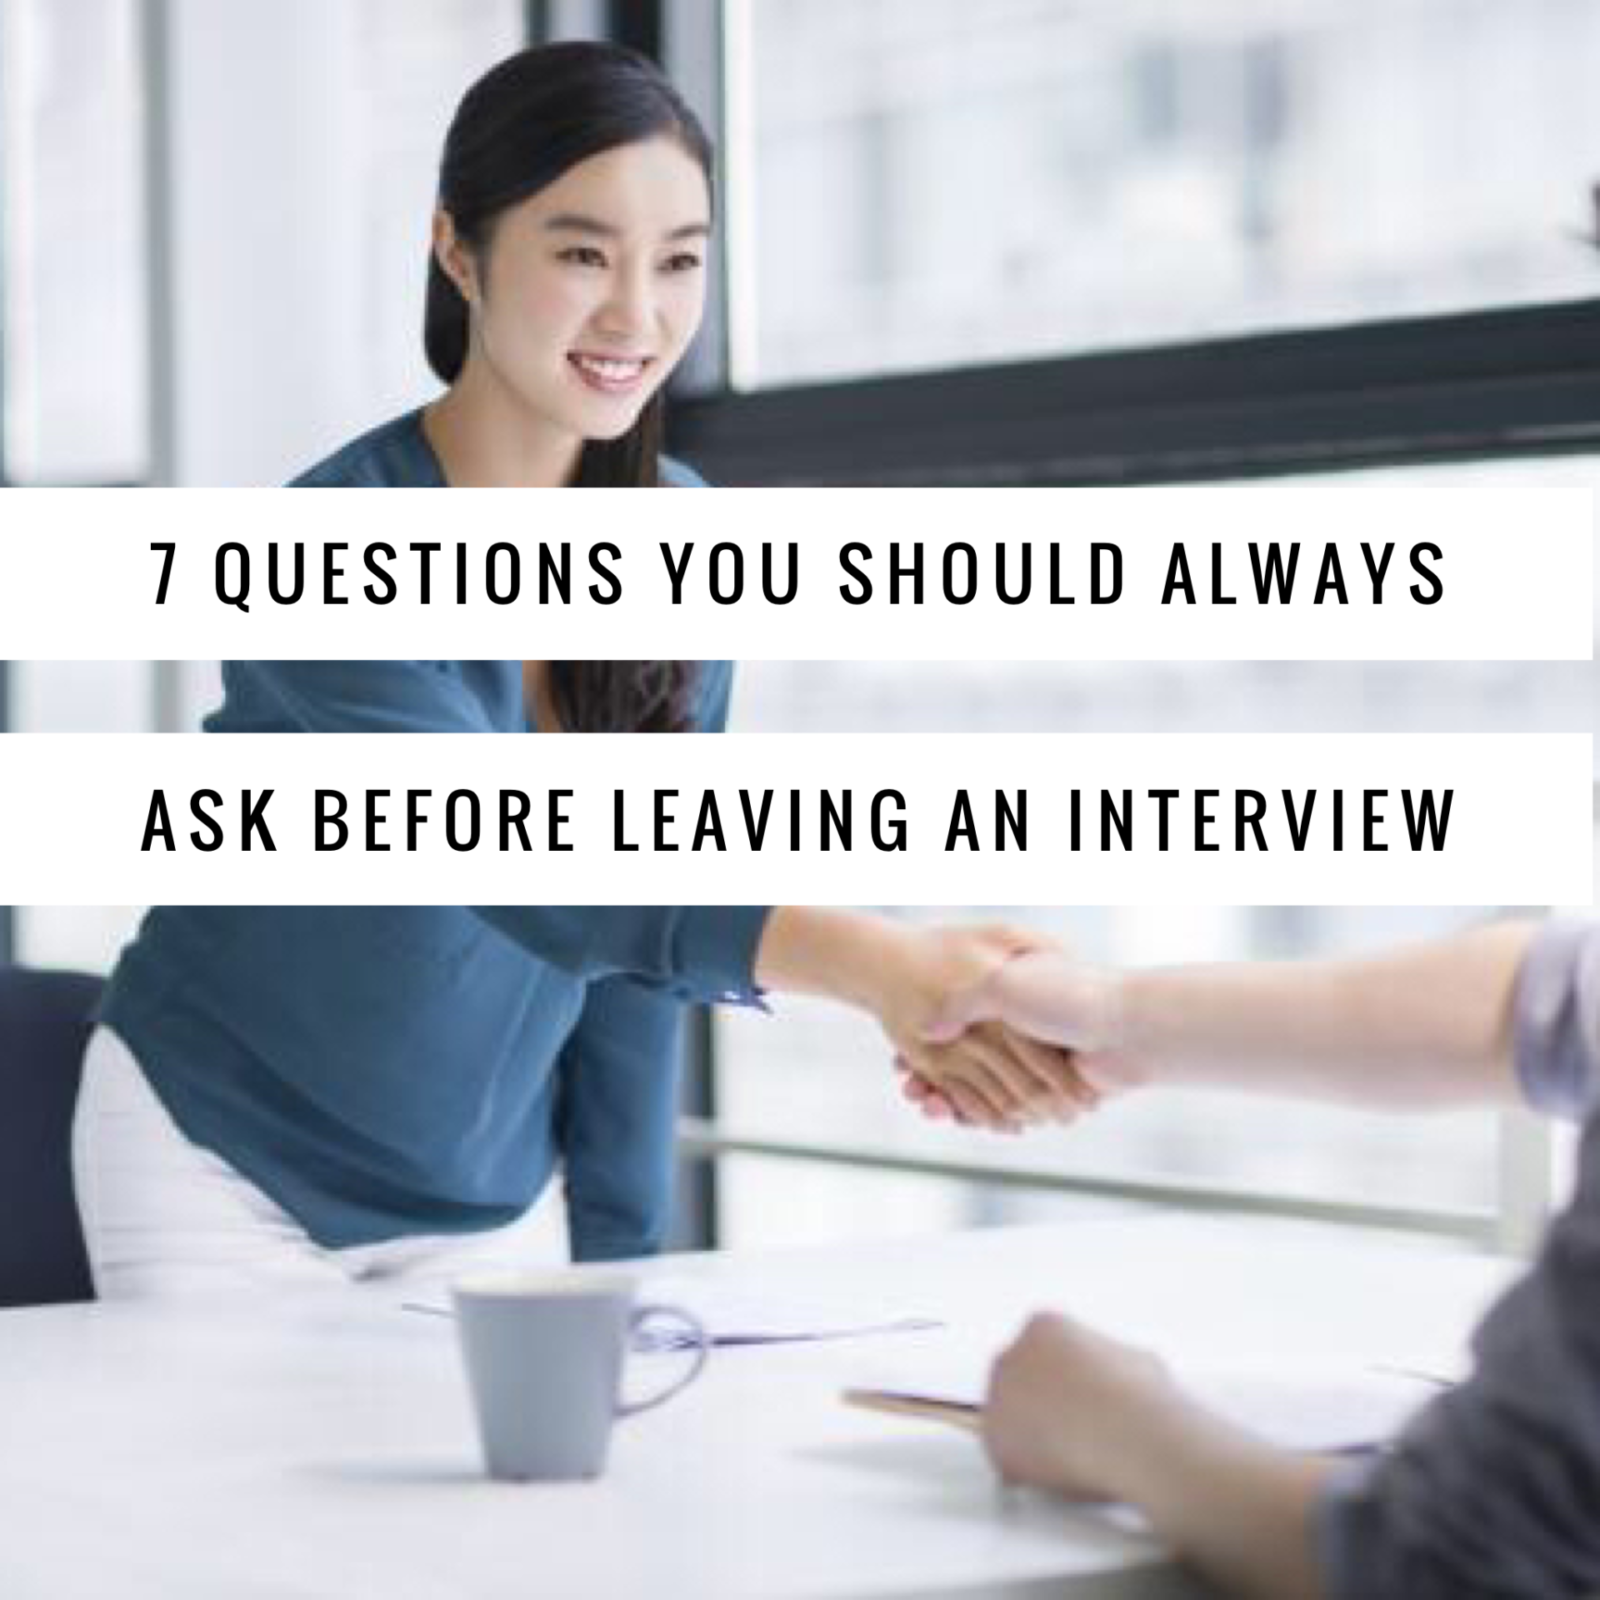 I Donu0027t Care How Confident You Are, Interviews Are Uncomfortable. Nine  Times Out Of Ten, If Weu0027re Interviewing For A Job We Either Really Want It,  ...